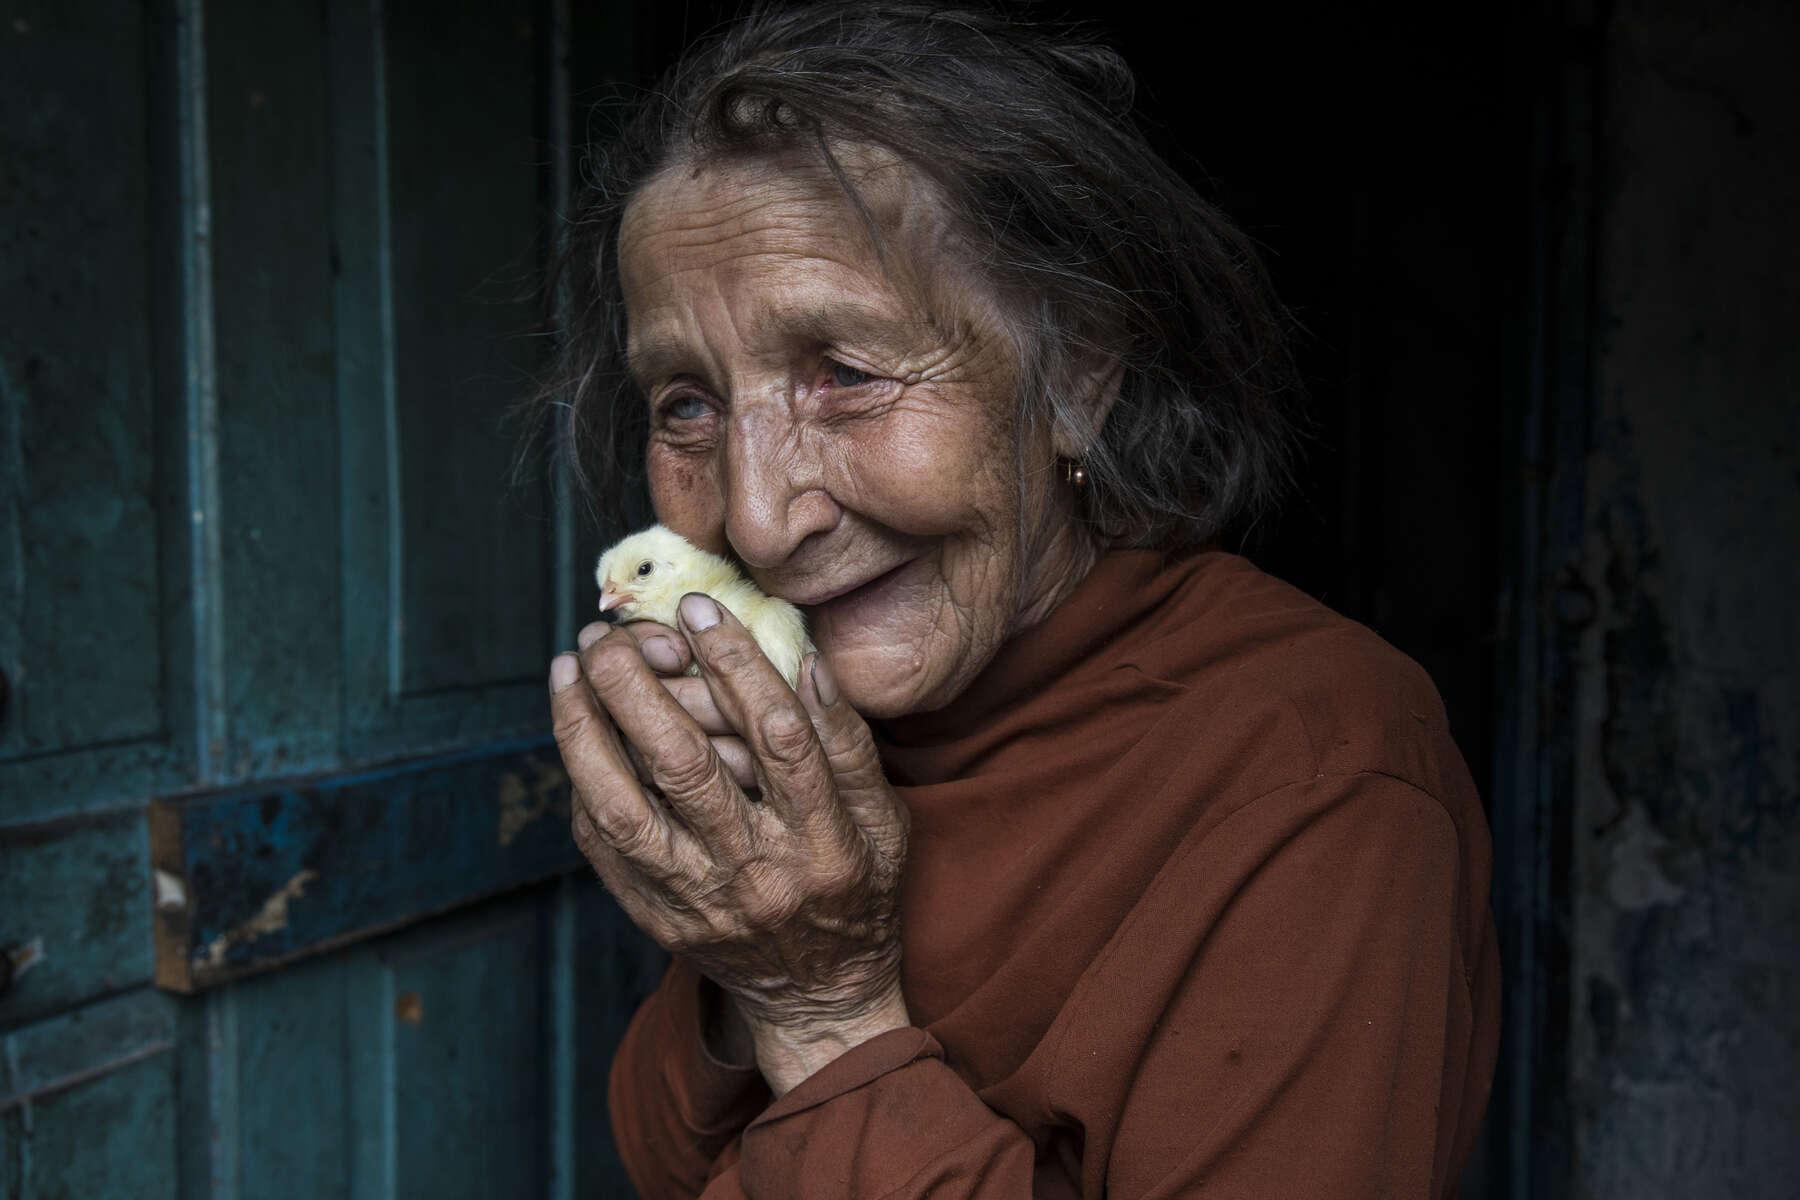 ( Opid-ne ) Opytne, Eastern Ukraine:  Mariya was killed at the age of 77, her home caught on fire from an oil lantern, firefighters couldn't access the home because of the dangers of the front line village, largely controlled by the Ukrainian military. She is seen holding new chicks delivered by ICRC as part of a humanitarian aid service for elderly that live alone. This allows her to raise chickens making a small income. Mariya often speaks with tears in her eyes while talking about the death of her son and her husband. Her son Victor,48, was fatally injured by shelling  in 2016 that hit the home. He died in her arms. Her husband, passed away the same year from a heart attack caused by extreme stress of living too close to the front line. She refuses to leave her village because her family are buried near by.{quote}I have nowhere to flee, my whole family is buried here.{quote}  {quote}I got used to the continued shelling.{quote} Opytne is a war torn village on the contact line where only 43 people are left due to the dangers.